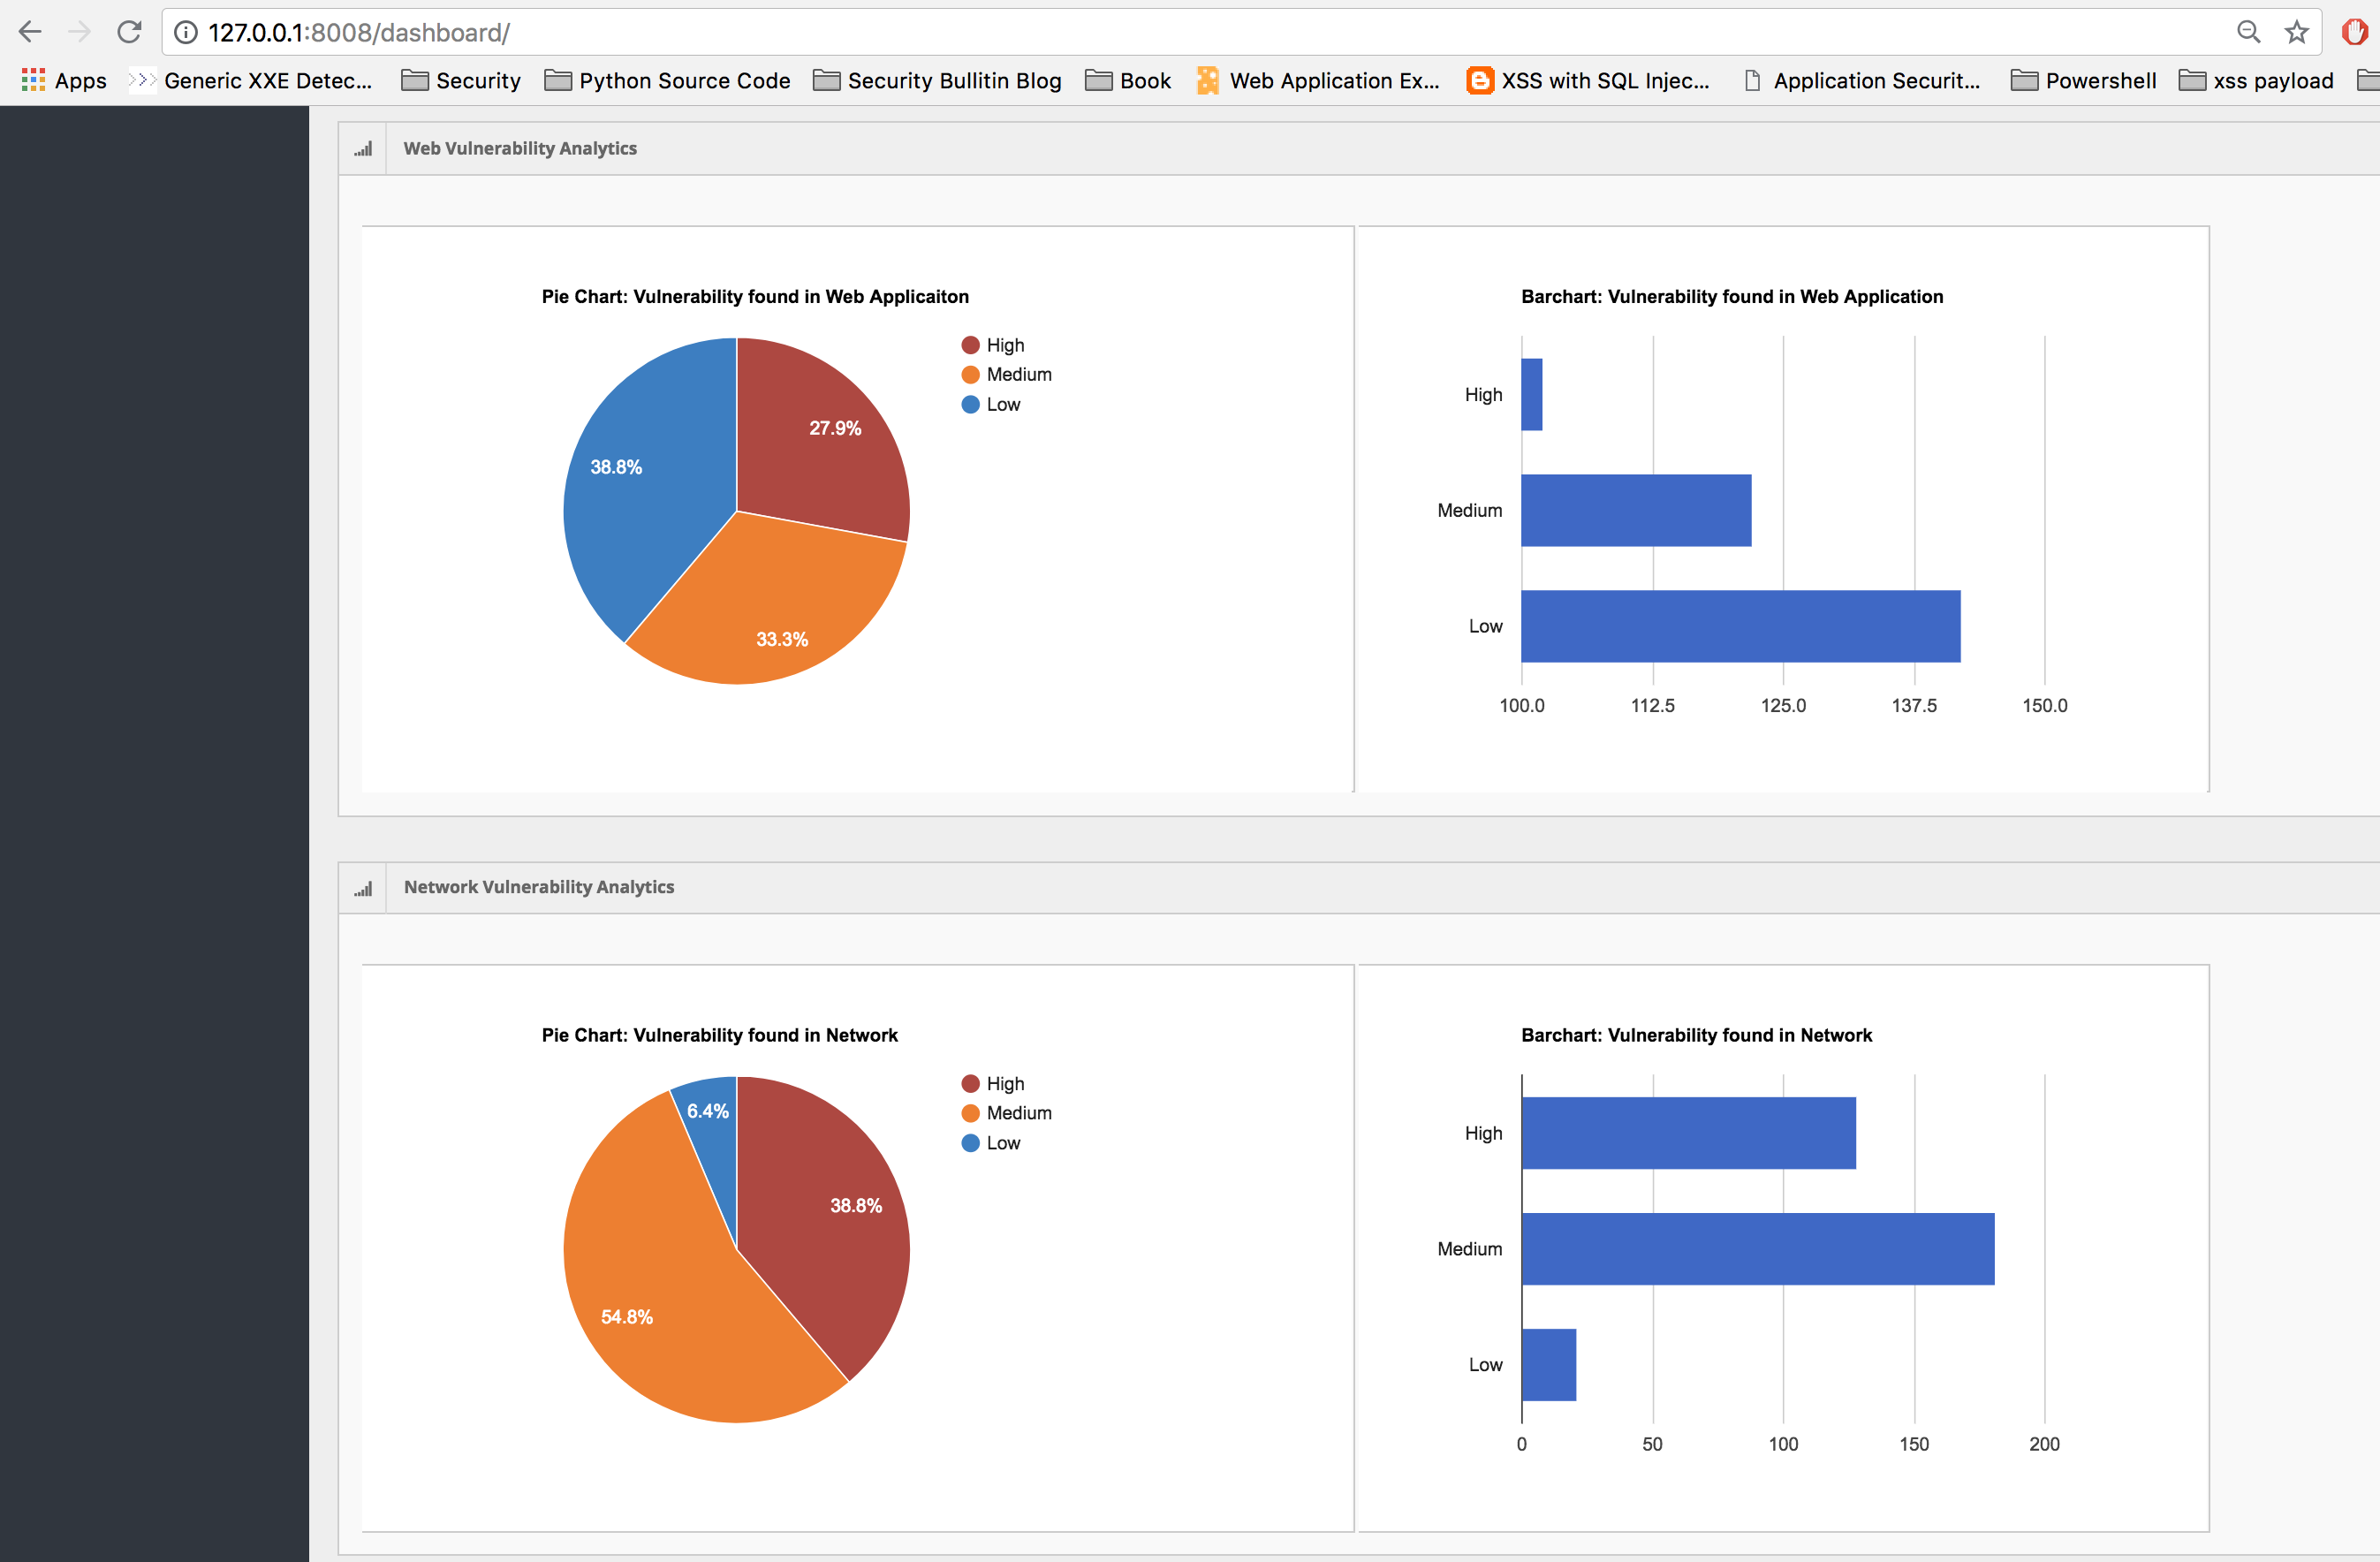 Archery - Vulnerability Assessment and Management Tool